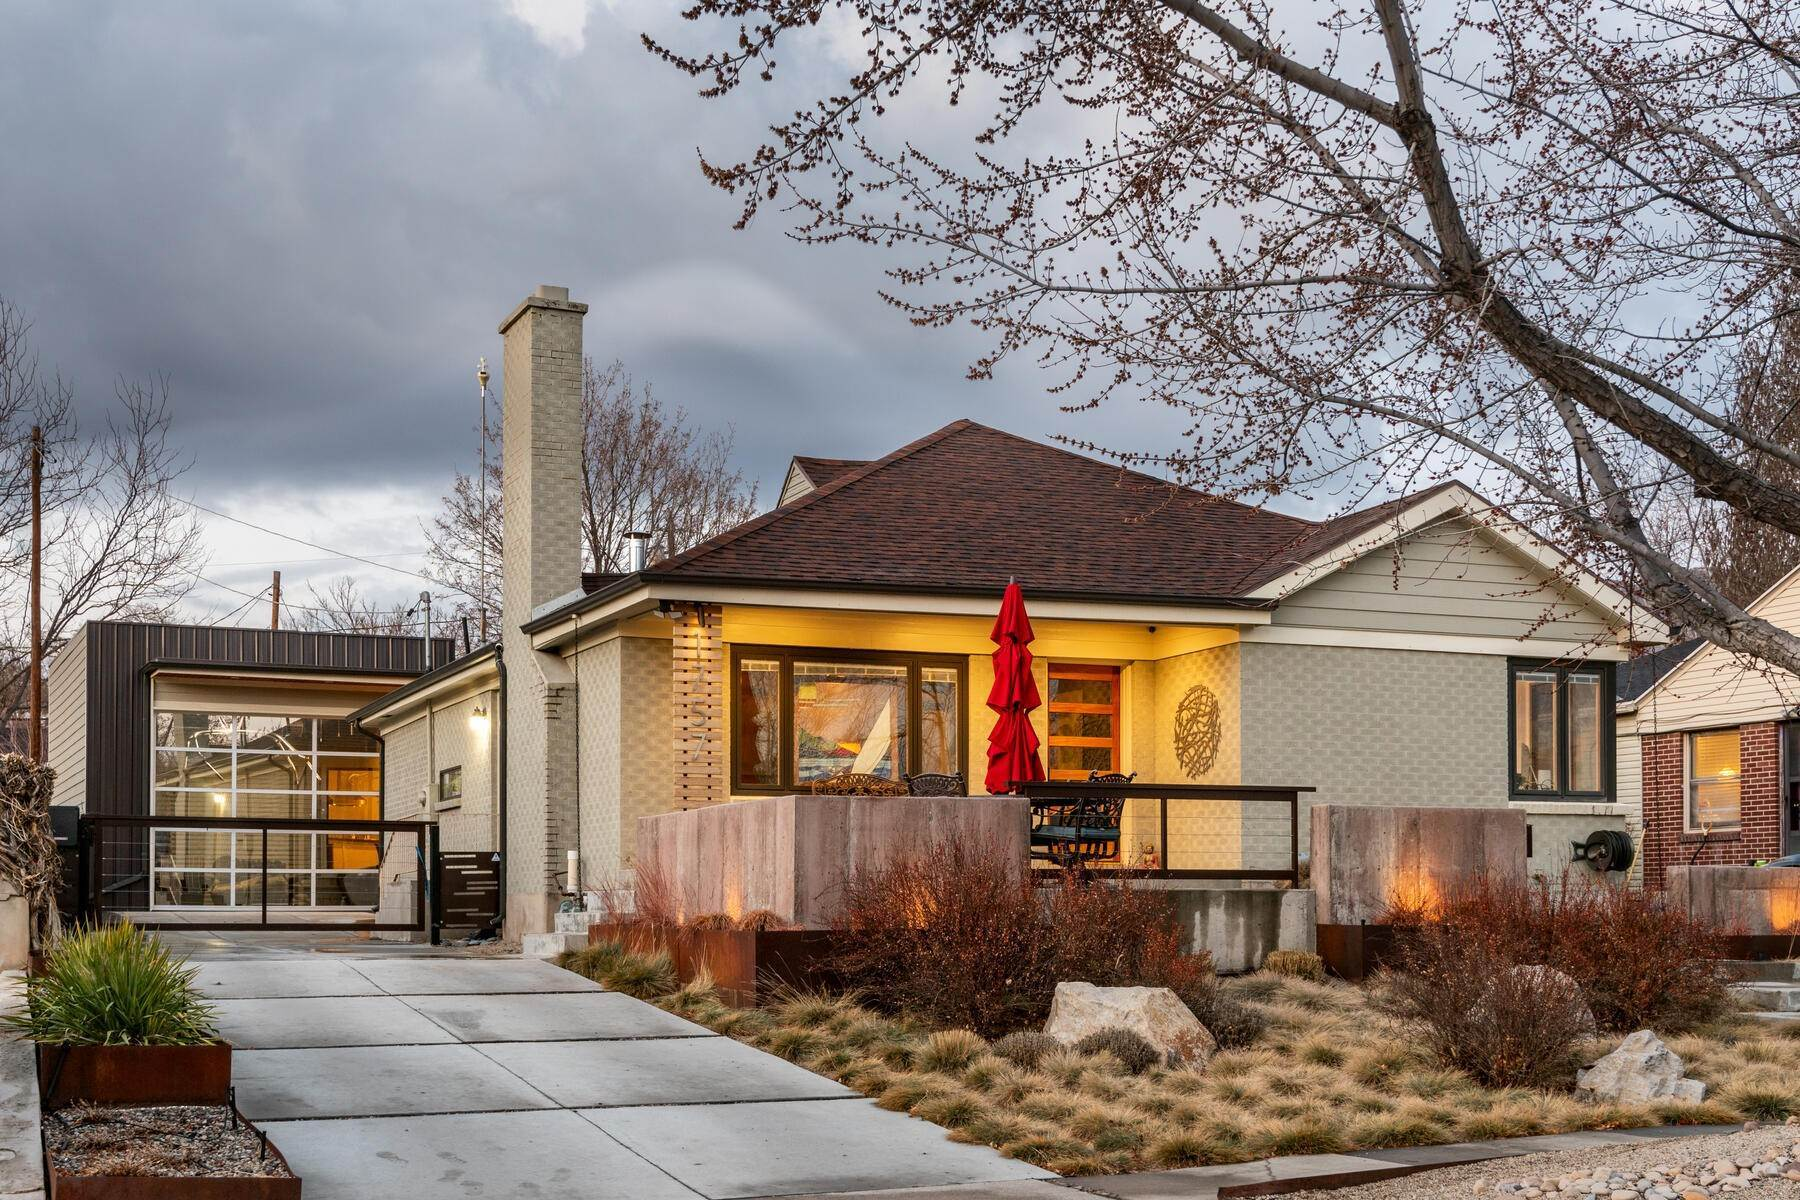 Single Family Homes for Sale at Masterfully Renovated Bungalow in Sugarhouse 1757 E Logan Avenue Salt Lake City, Utah 84108 United States